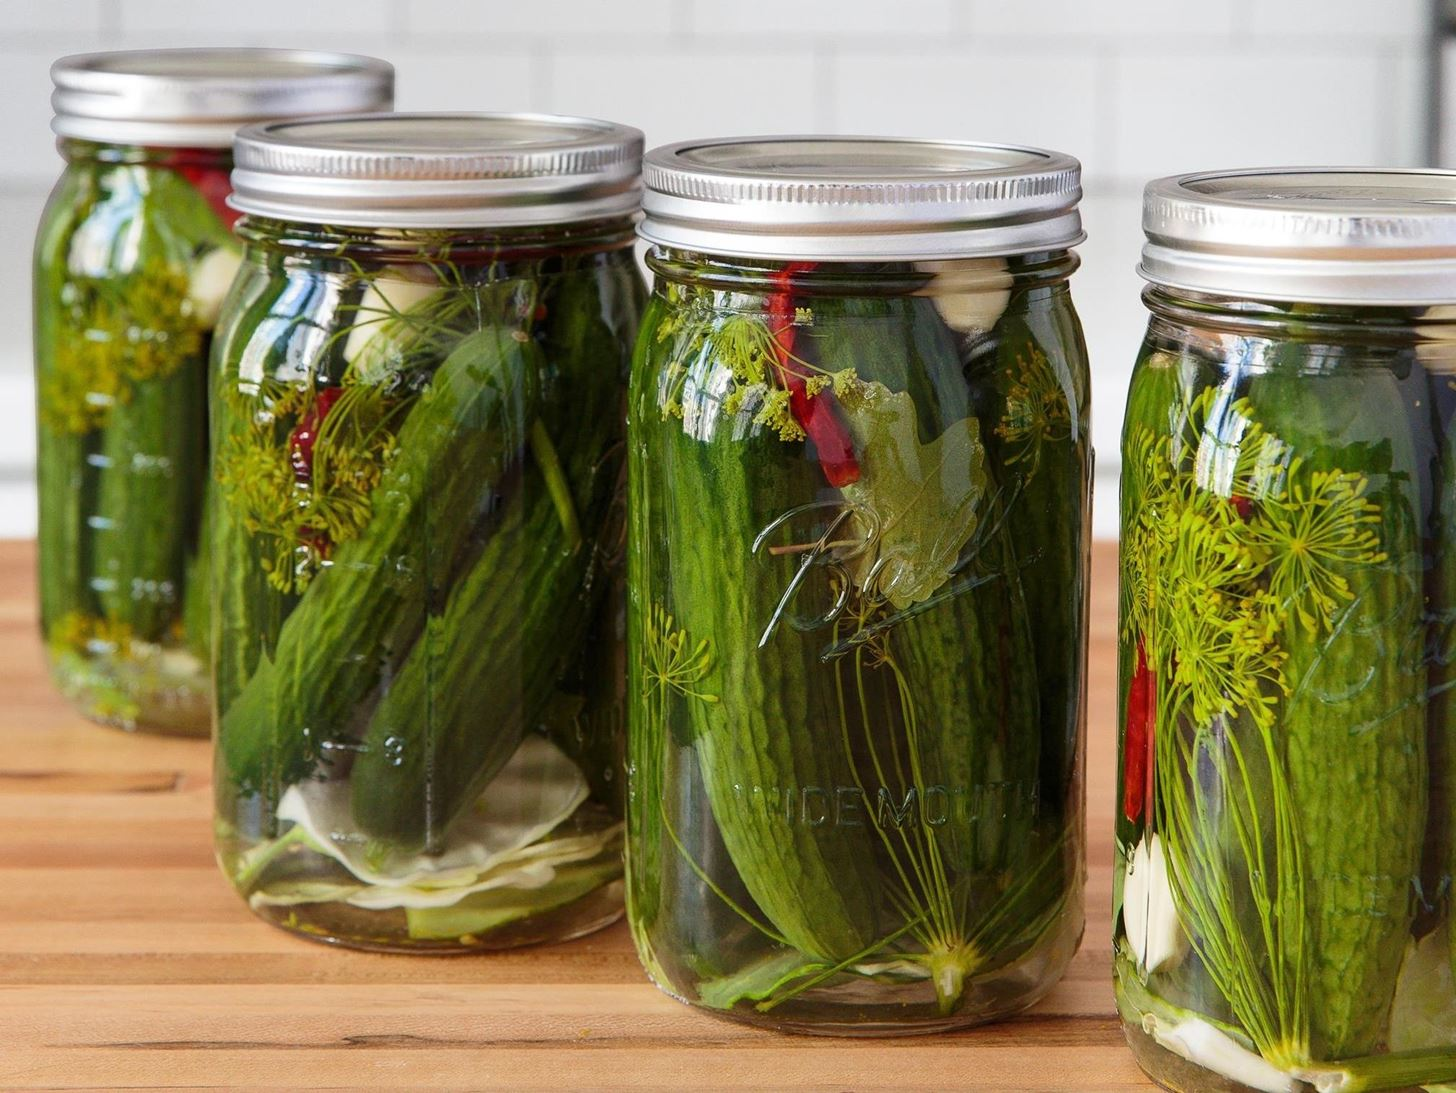 15 Mind-Blowing Ways to Use Leftover Pickle Juice